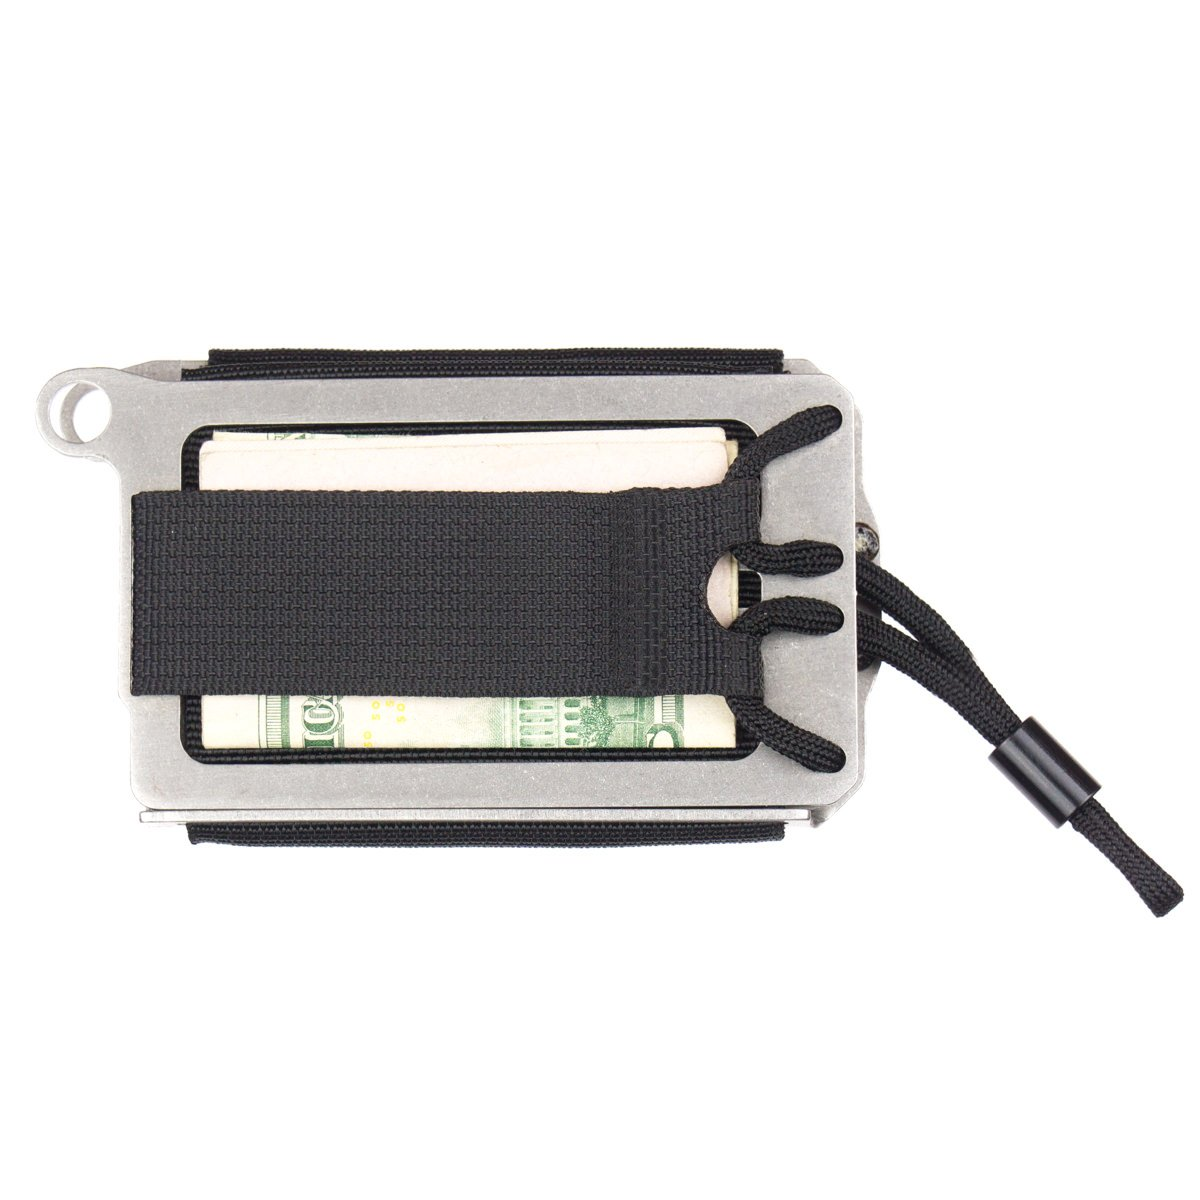 841fd19afd62 Amazon.com  Trayvax Axis Wallet (Tumbled Stainless)  Electronics